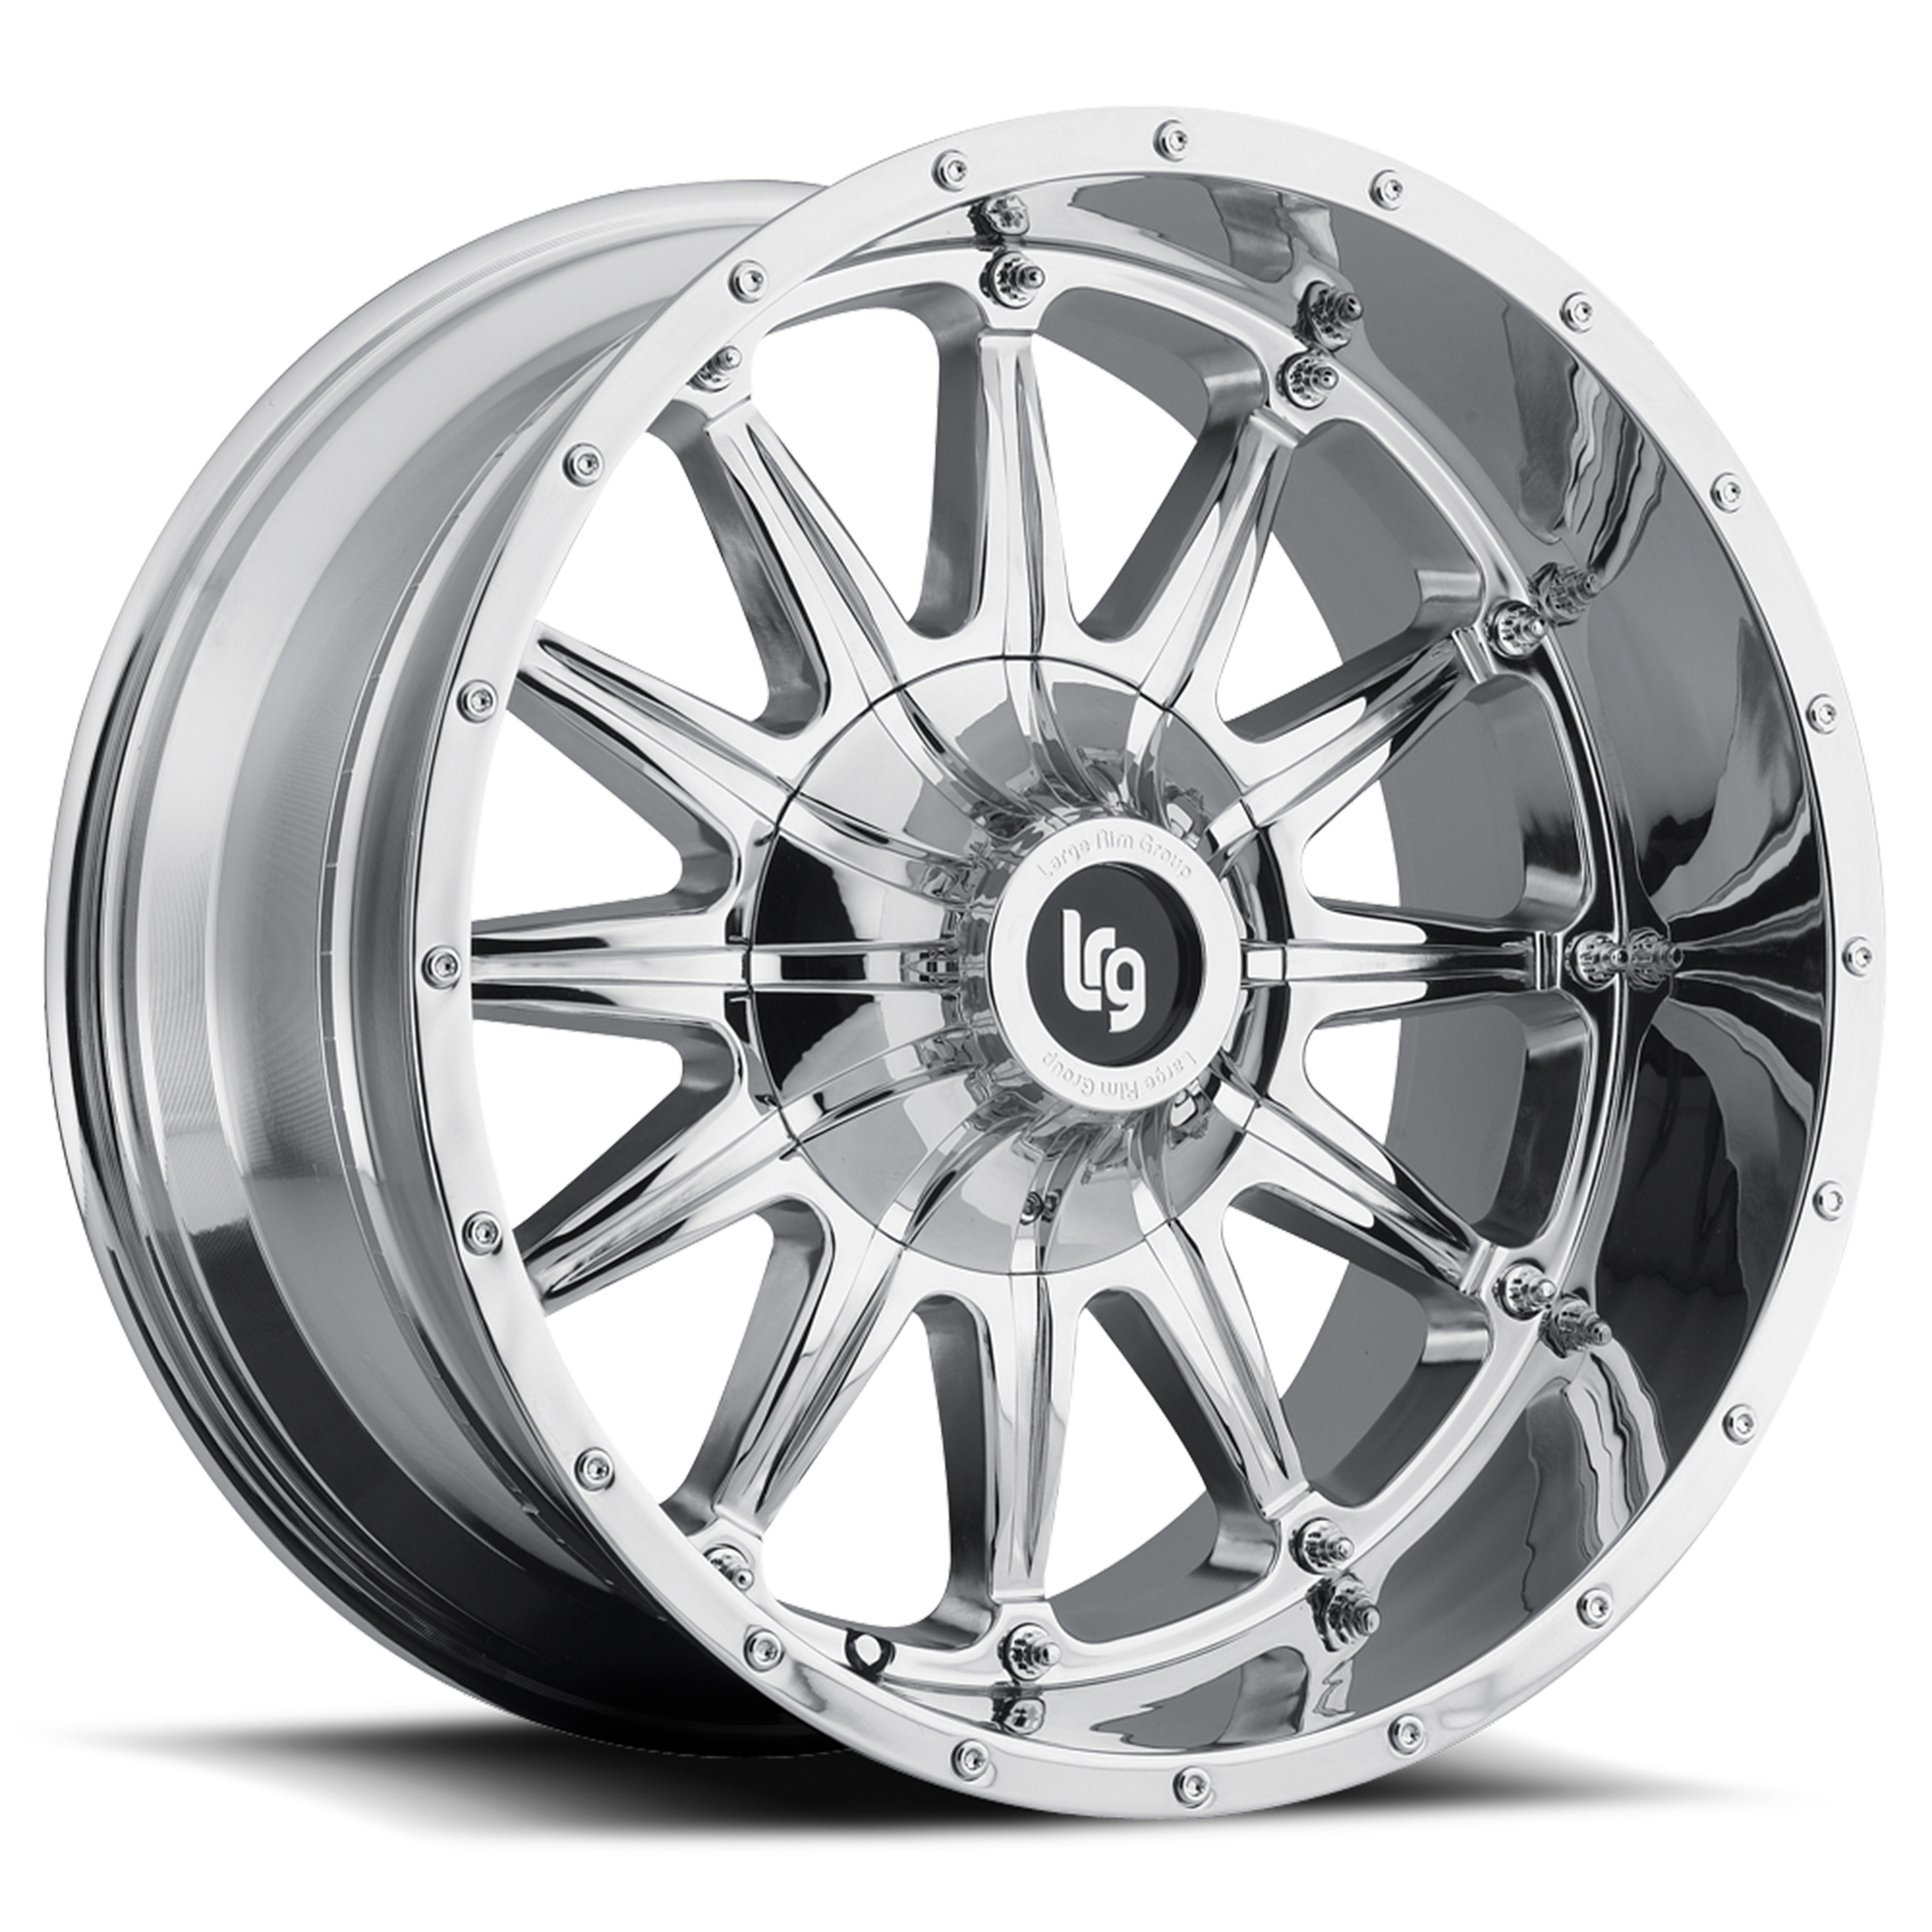 LRG Rims Series 103 Chrome Finish Wheels